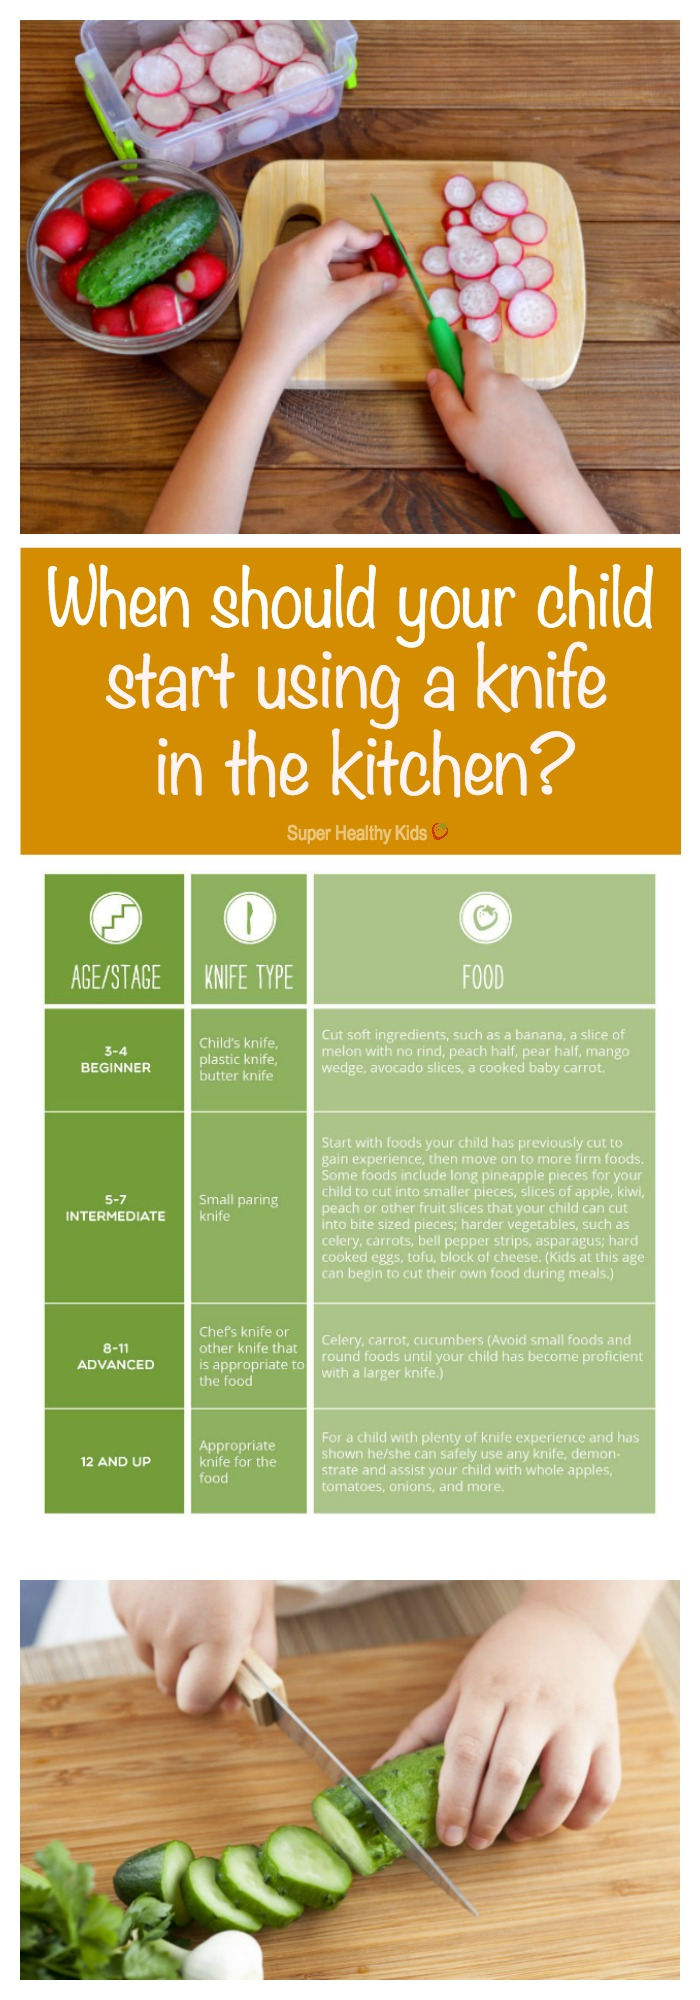 When should your child start using a knife in the kitchen? Get your children in the kitchen, learning knife skills and other important cooking skills, with this guide of foods to cut by a child's age/stage. http://www.superhealthykids.com/child-use-knife/